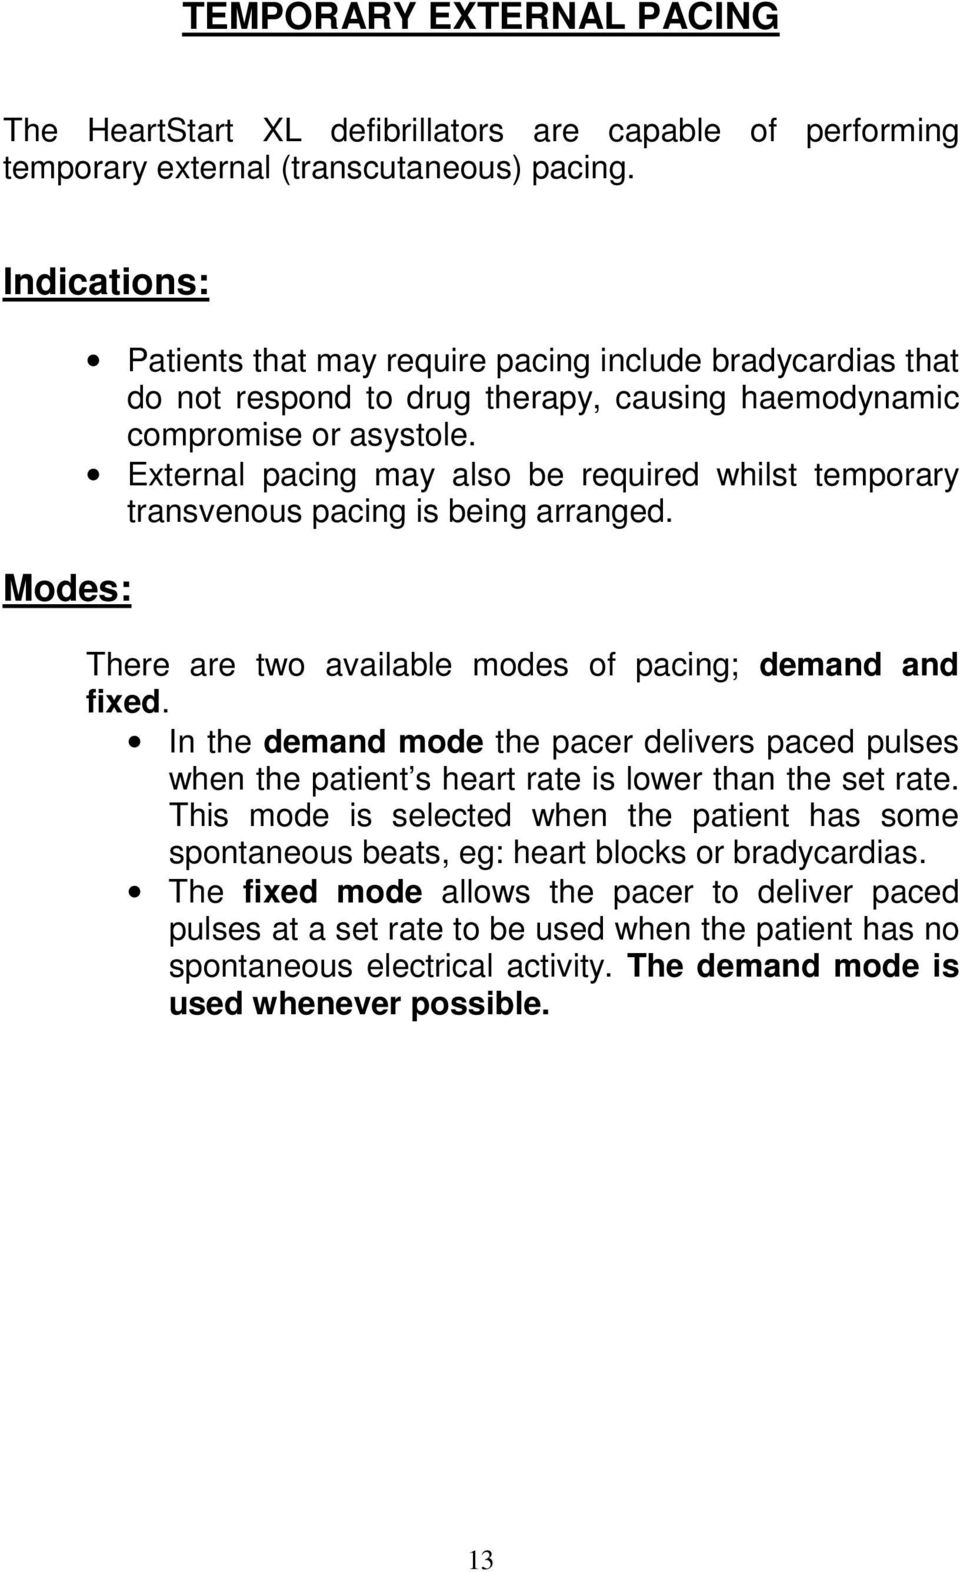 External pacing may also be required whilst temporary transvenous pacing is being arranged. There are two available modes of pacing; demand and fixed.